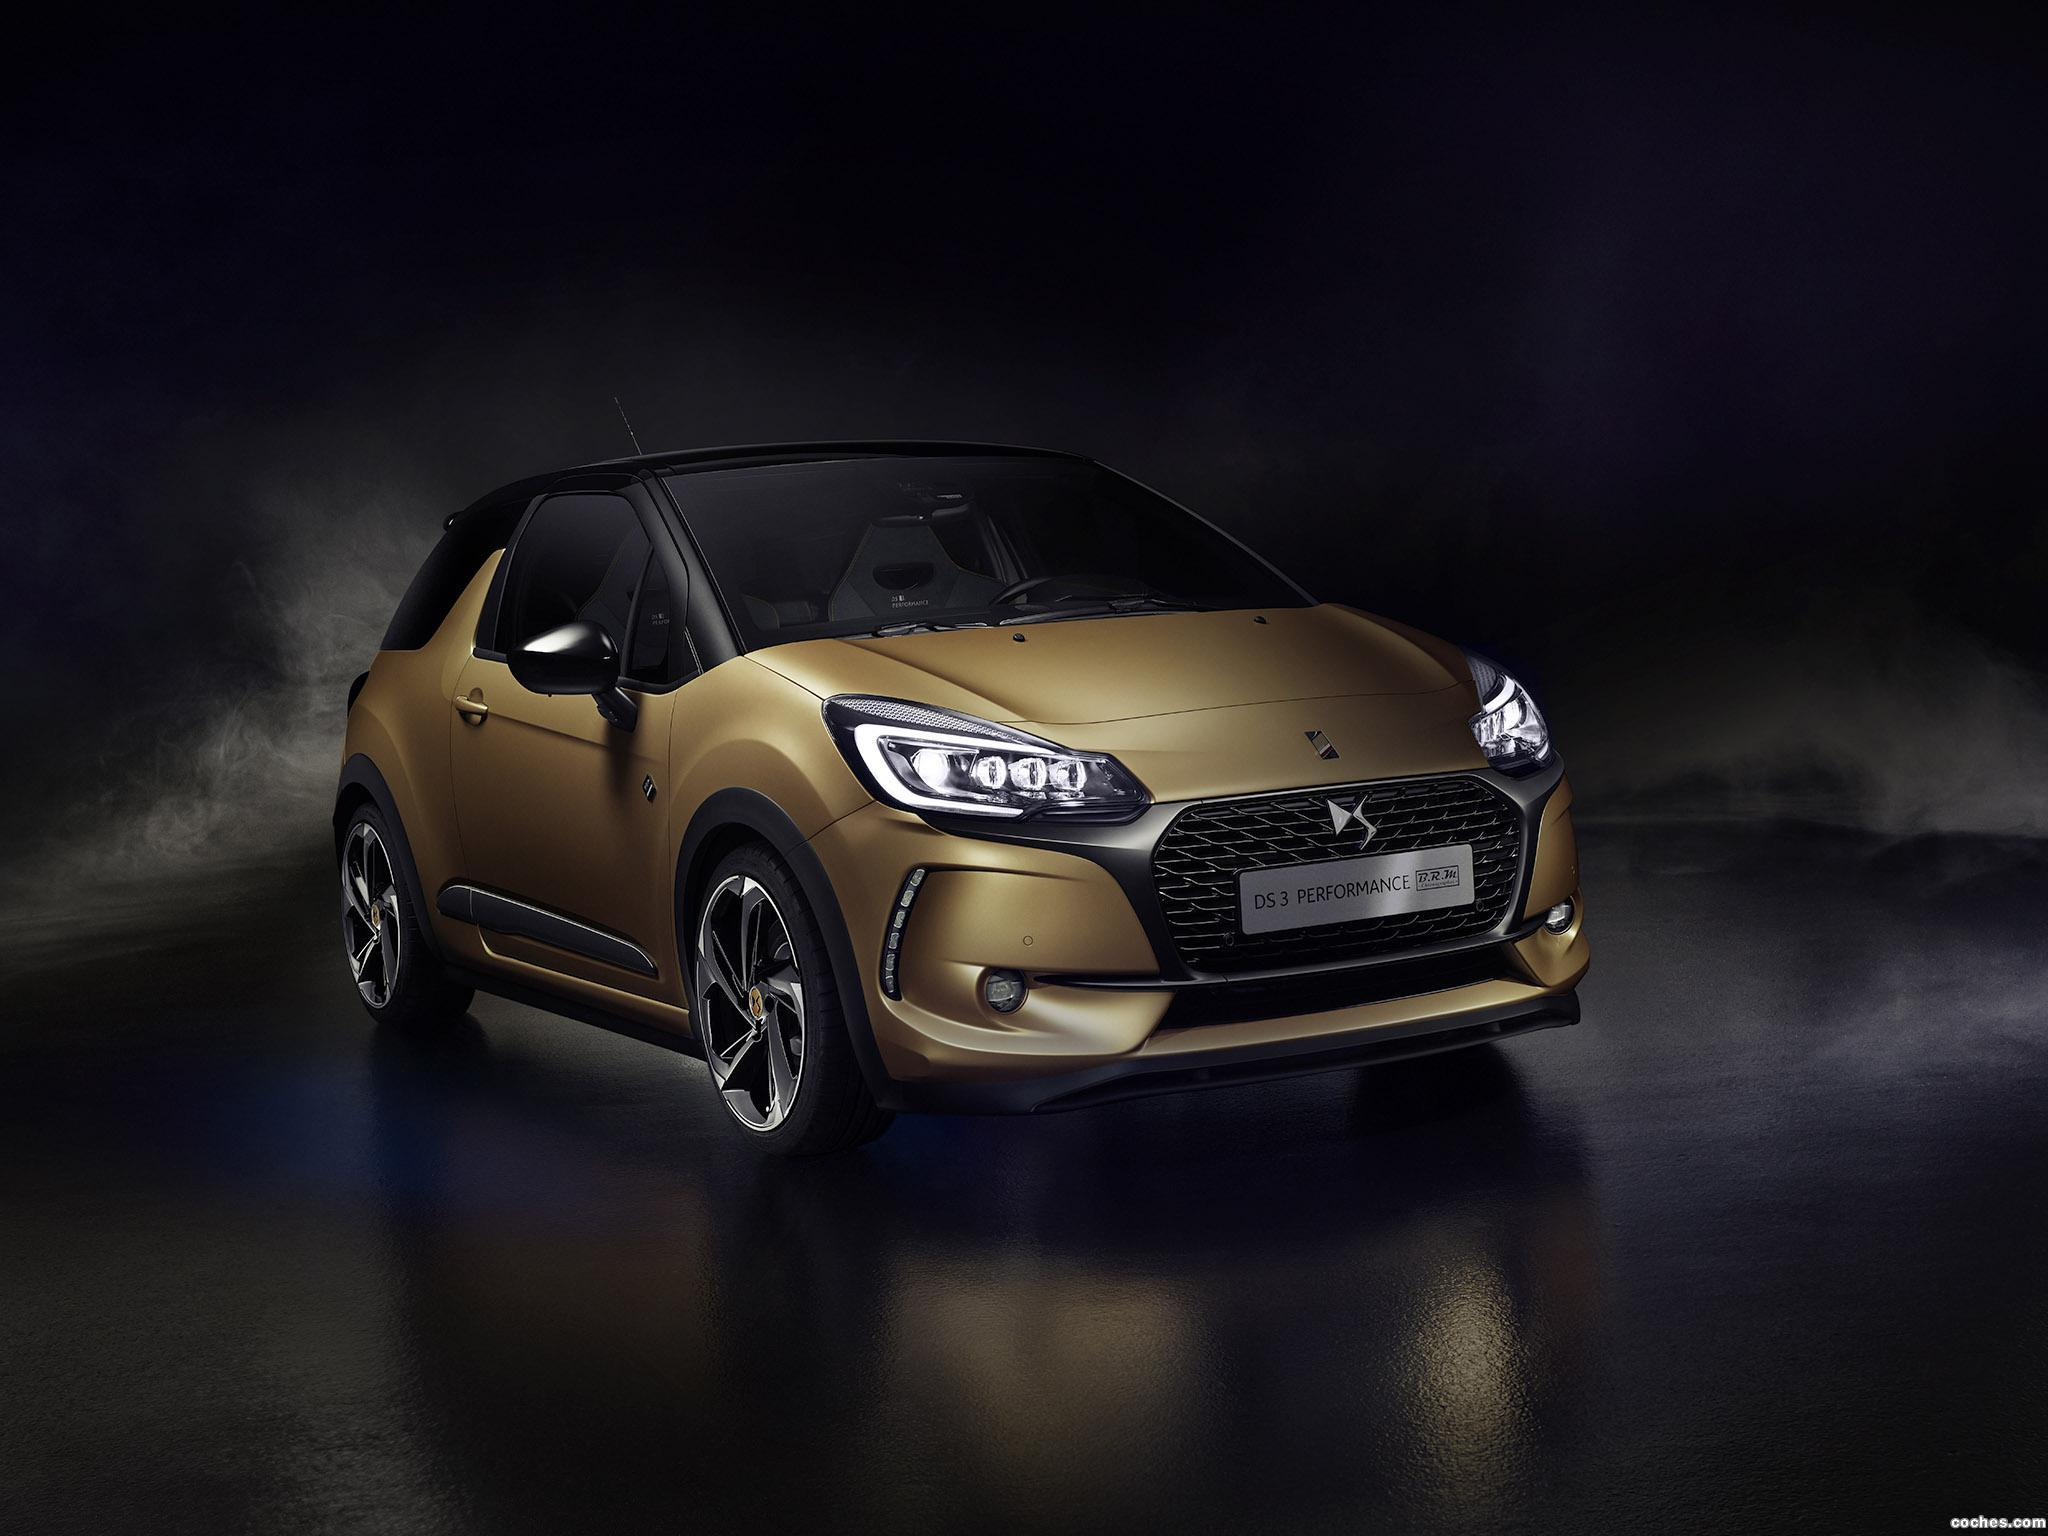 Foto 0 de Citroen DS 3 Performance BRM Chronographes 2016